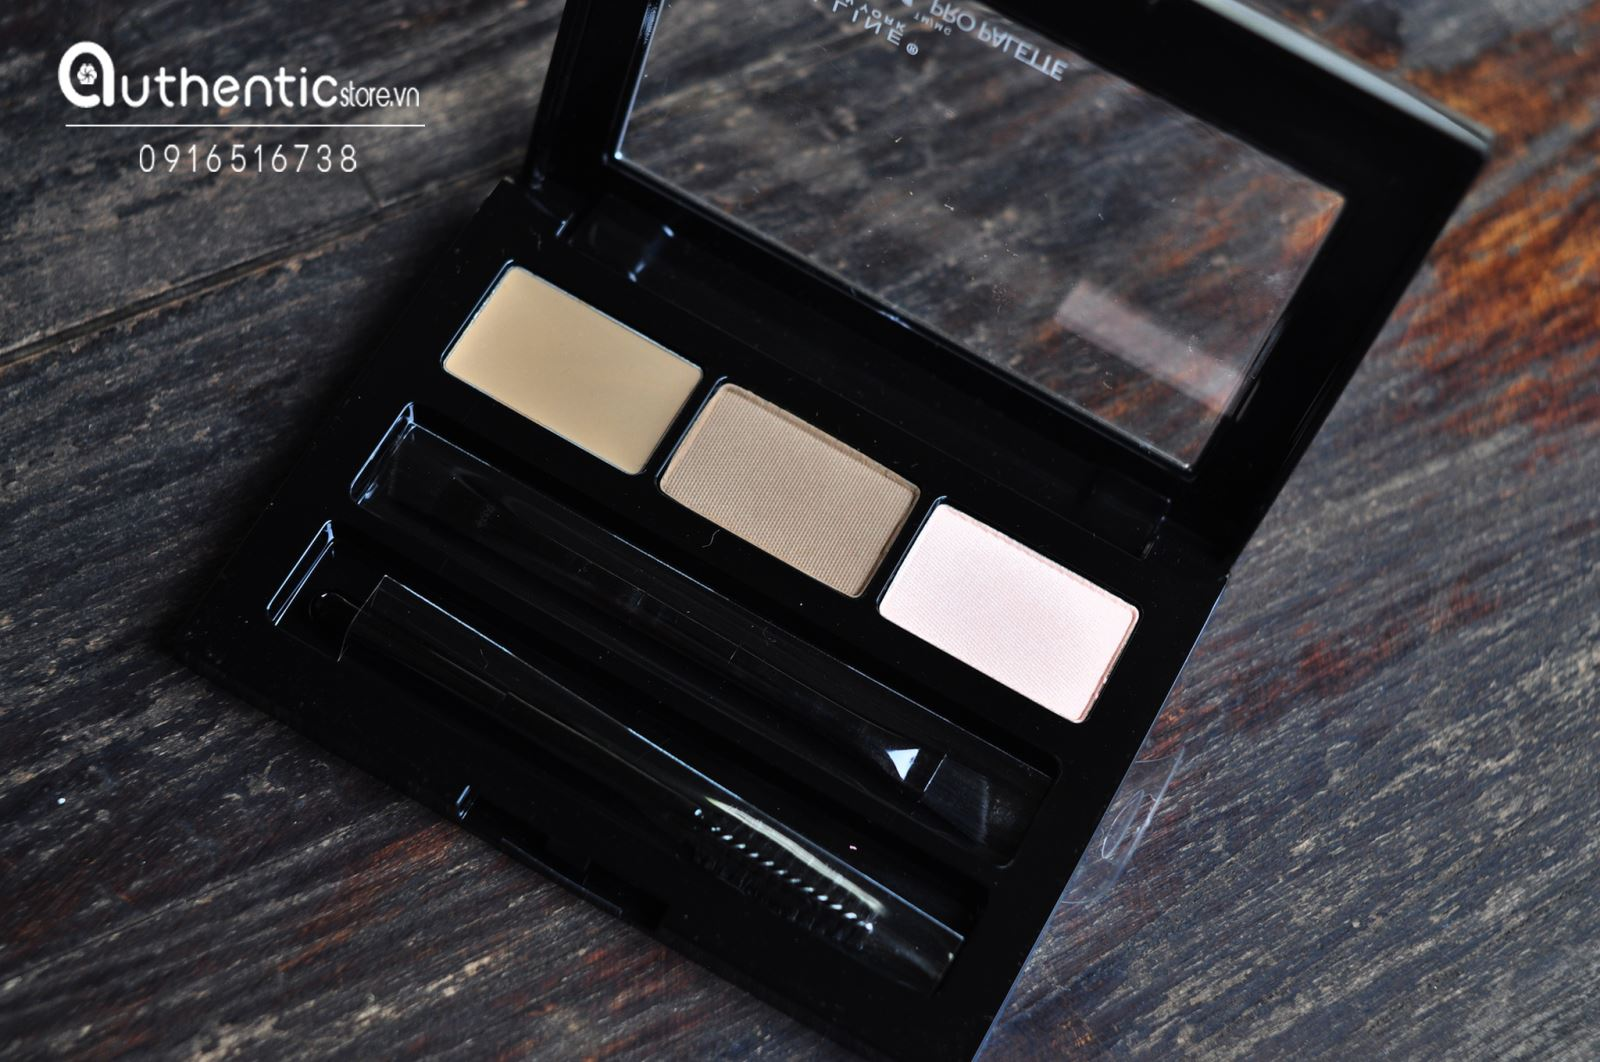 Bột tán mày Maybelline Brow Drama Pro Palette